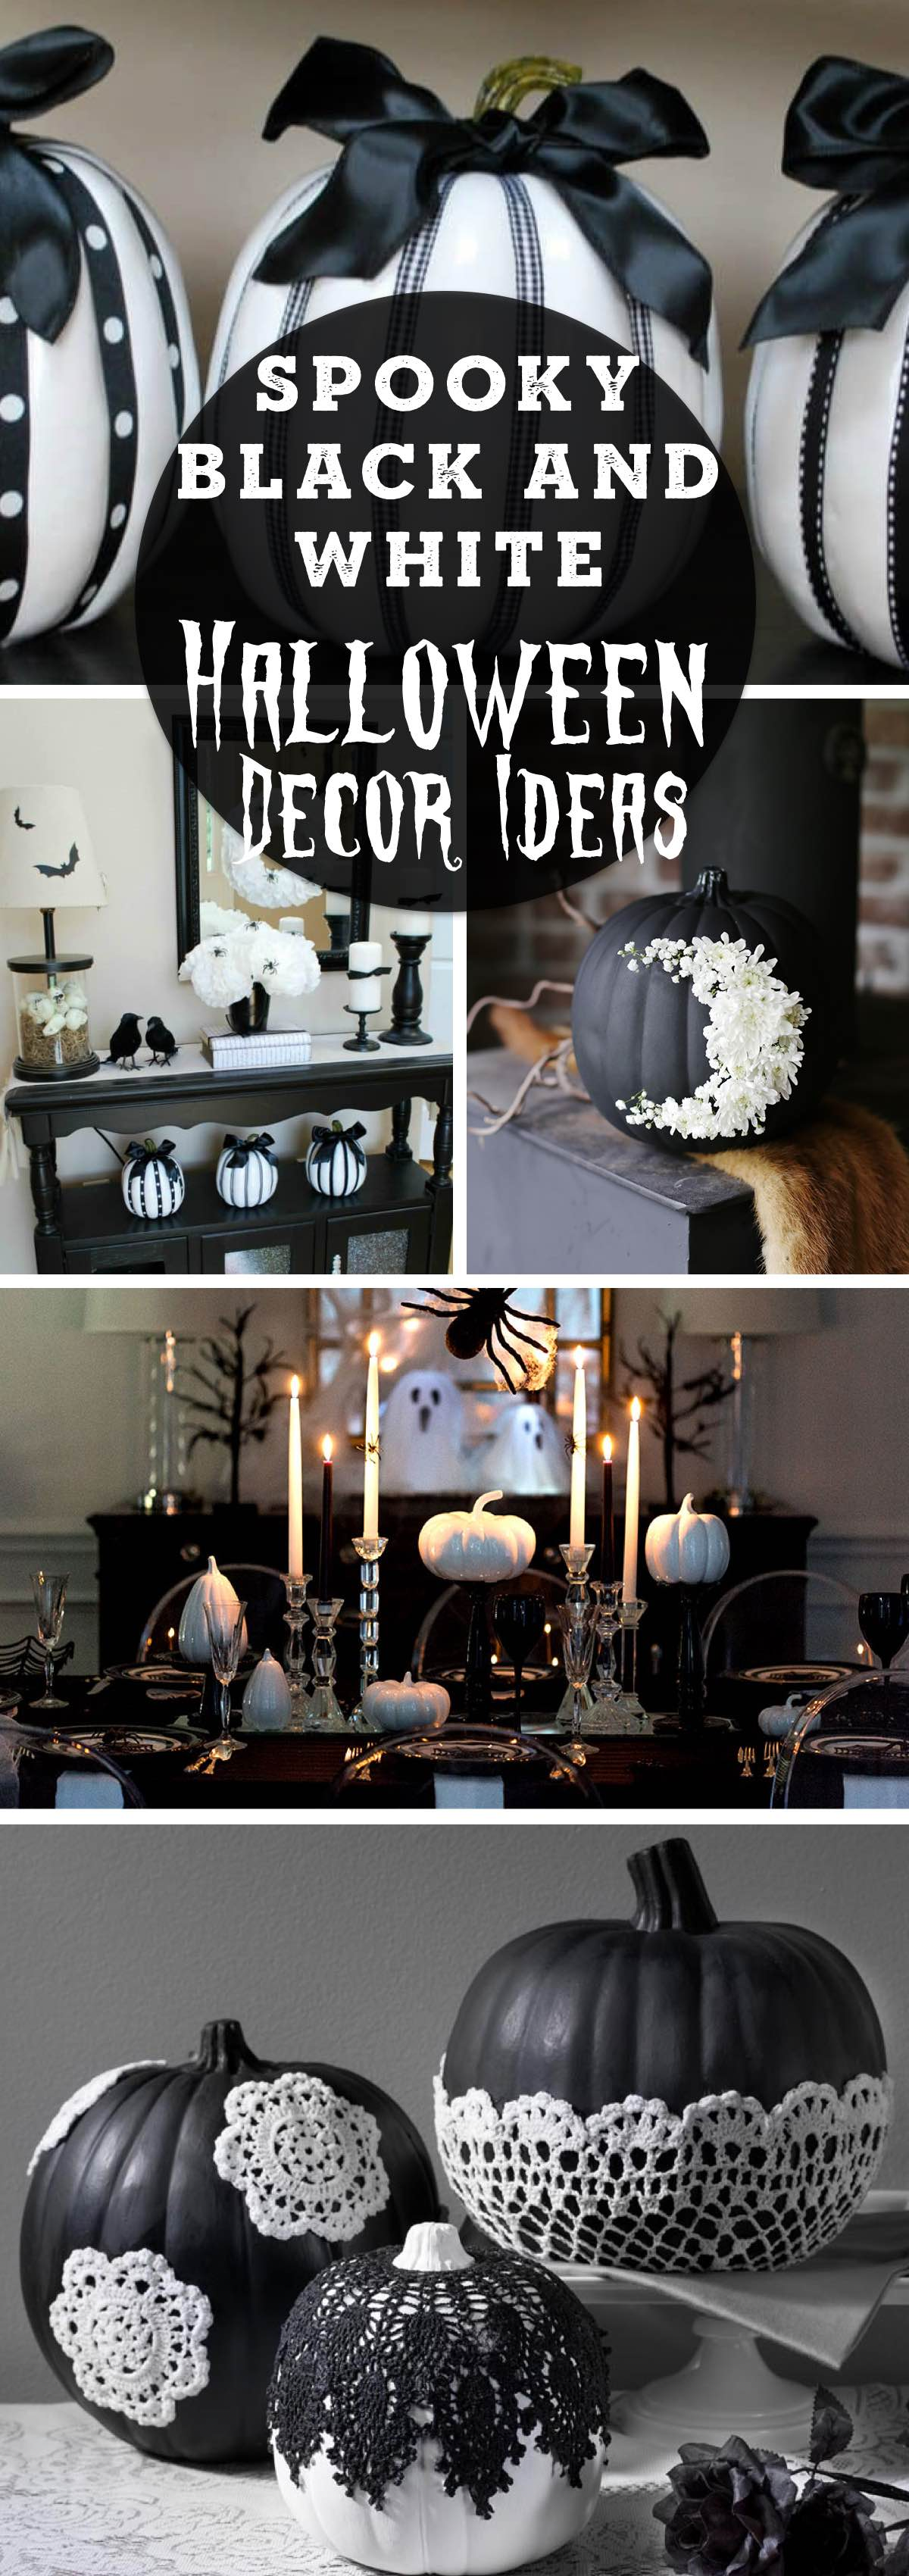 Spooky Black and White Halloween Decor Ideas